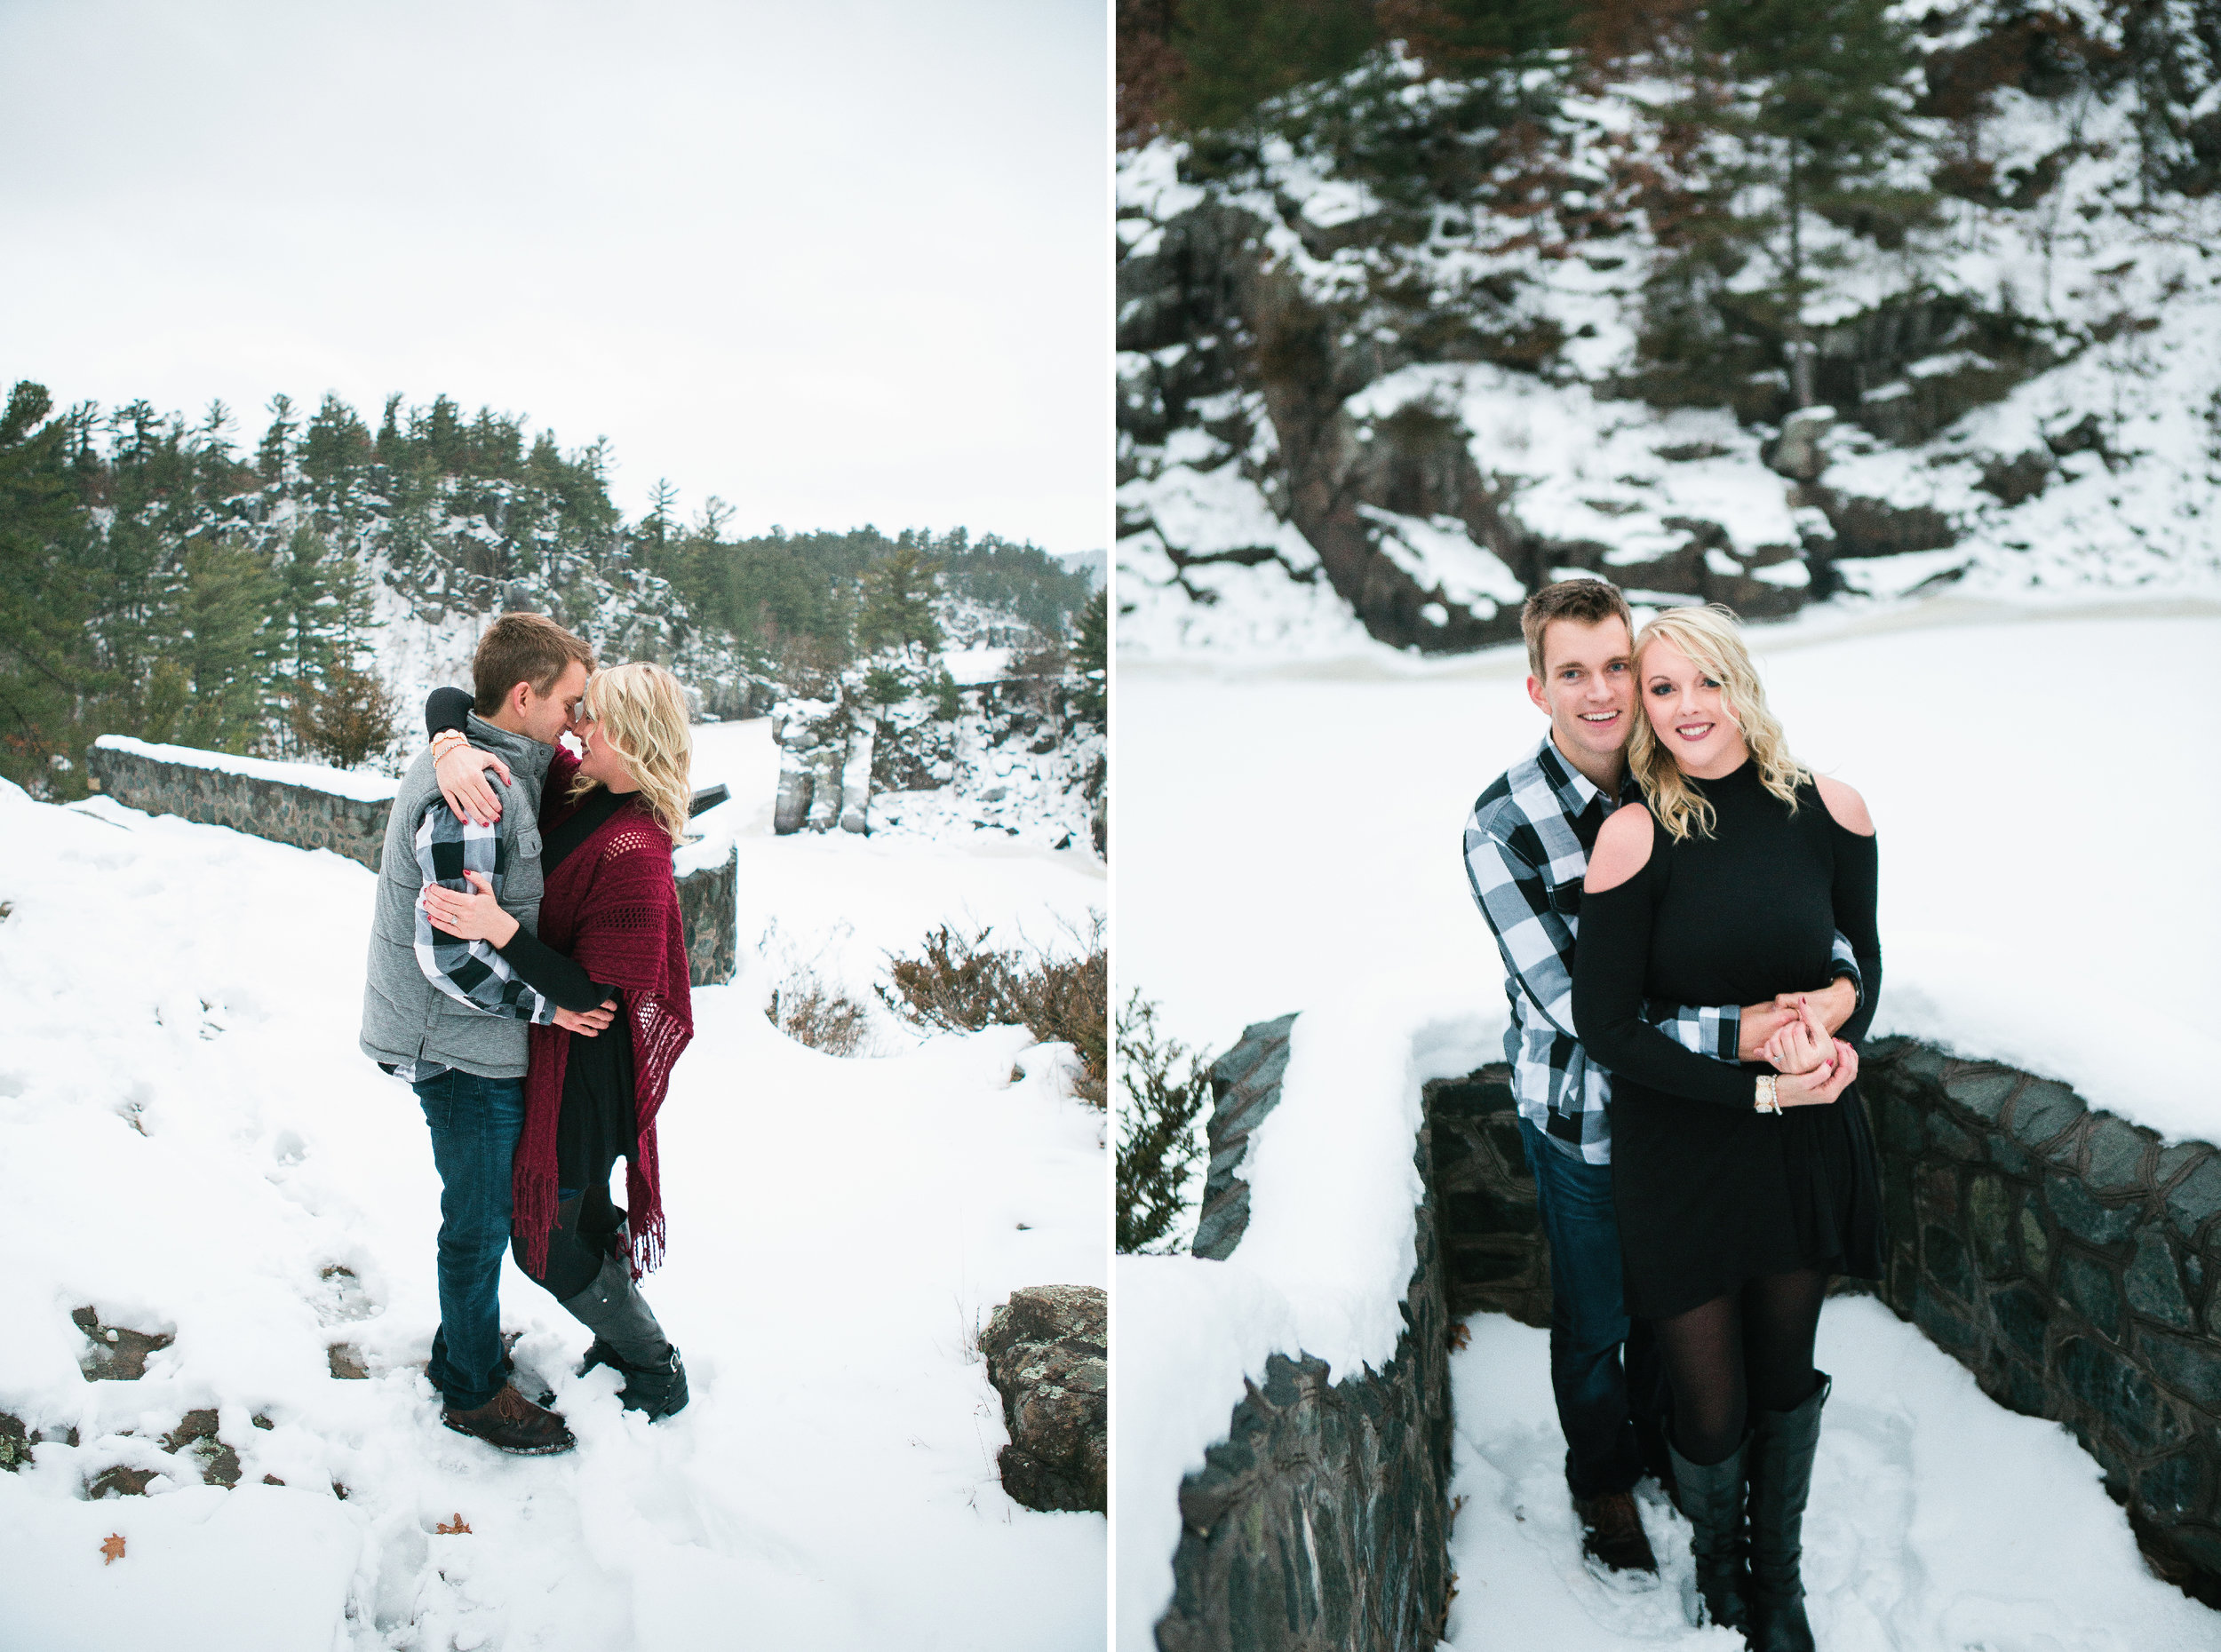 Snowy Minnesota Taylors Falls winter engagement photos on bluff overlooking river and woods